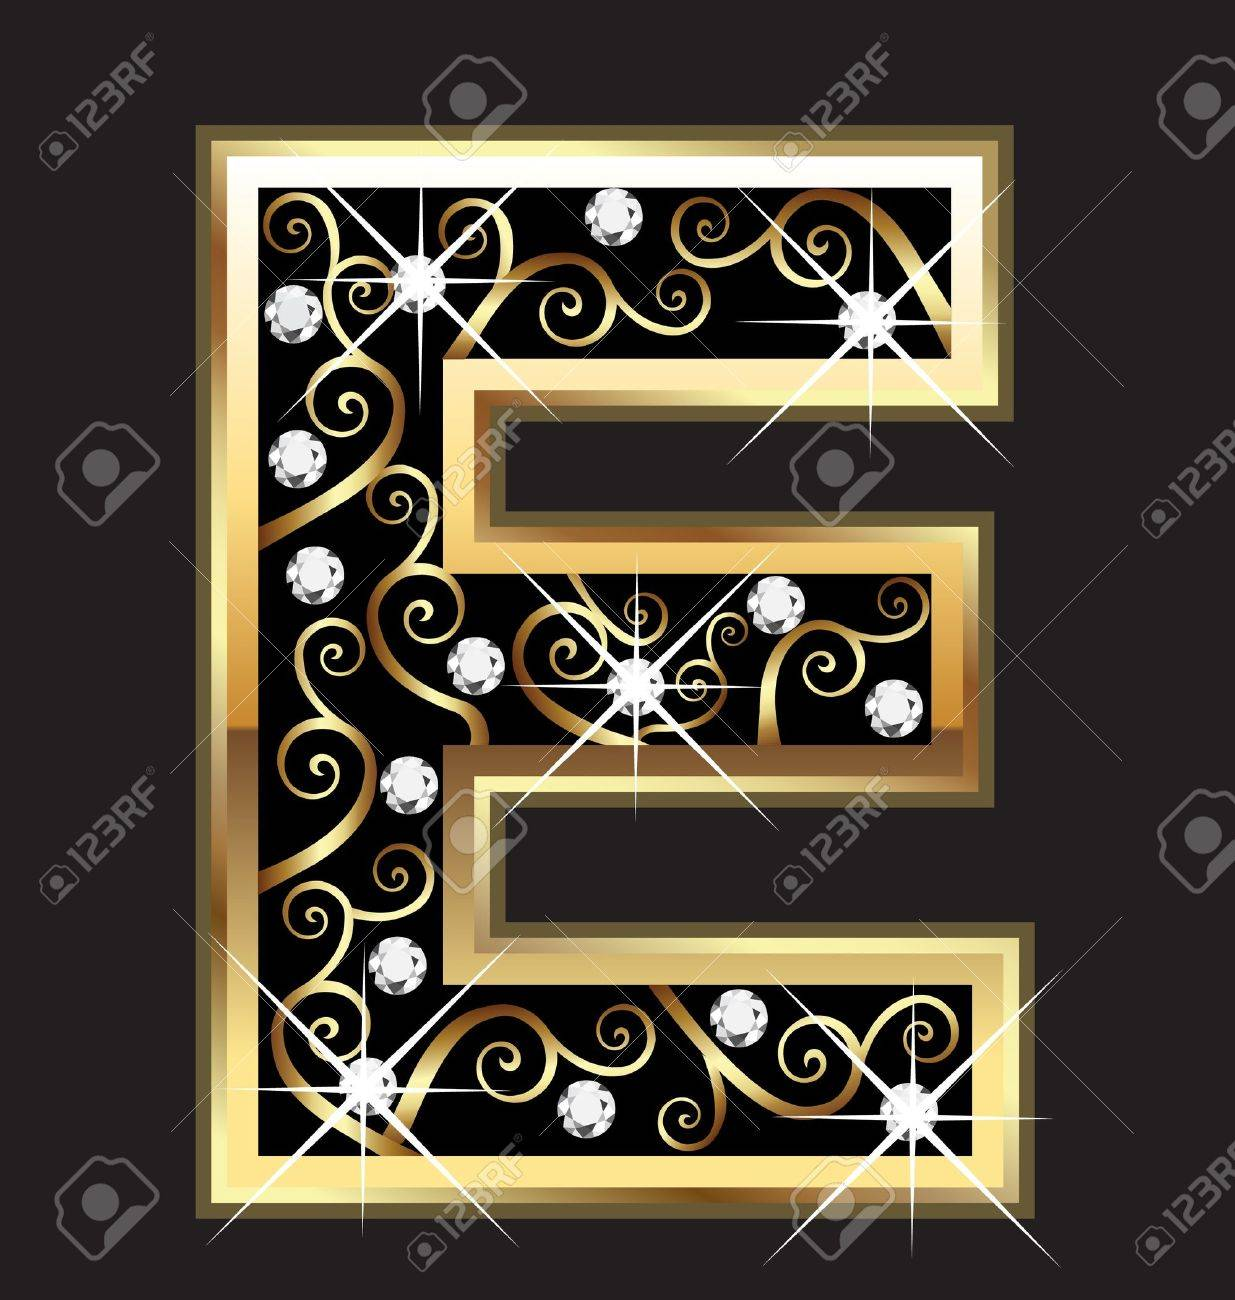 gold letter e gold letter with swirly ornaments illustration